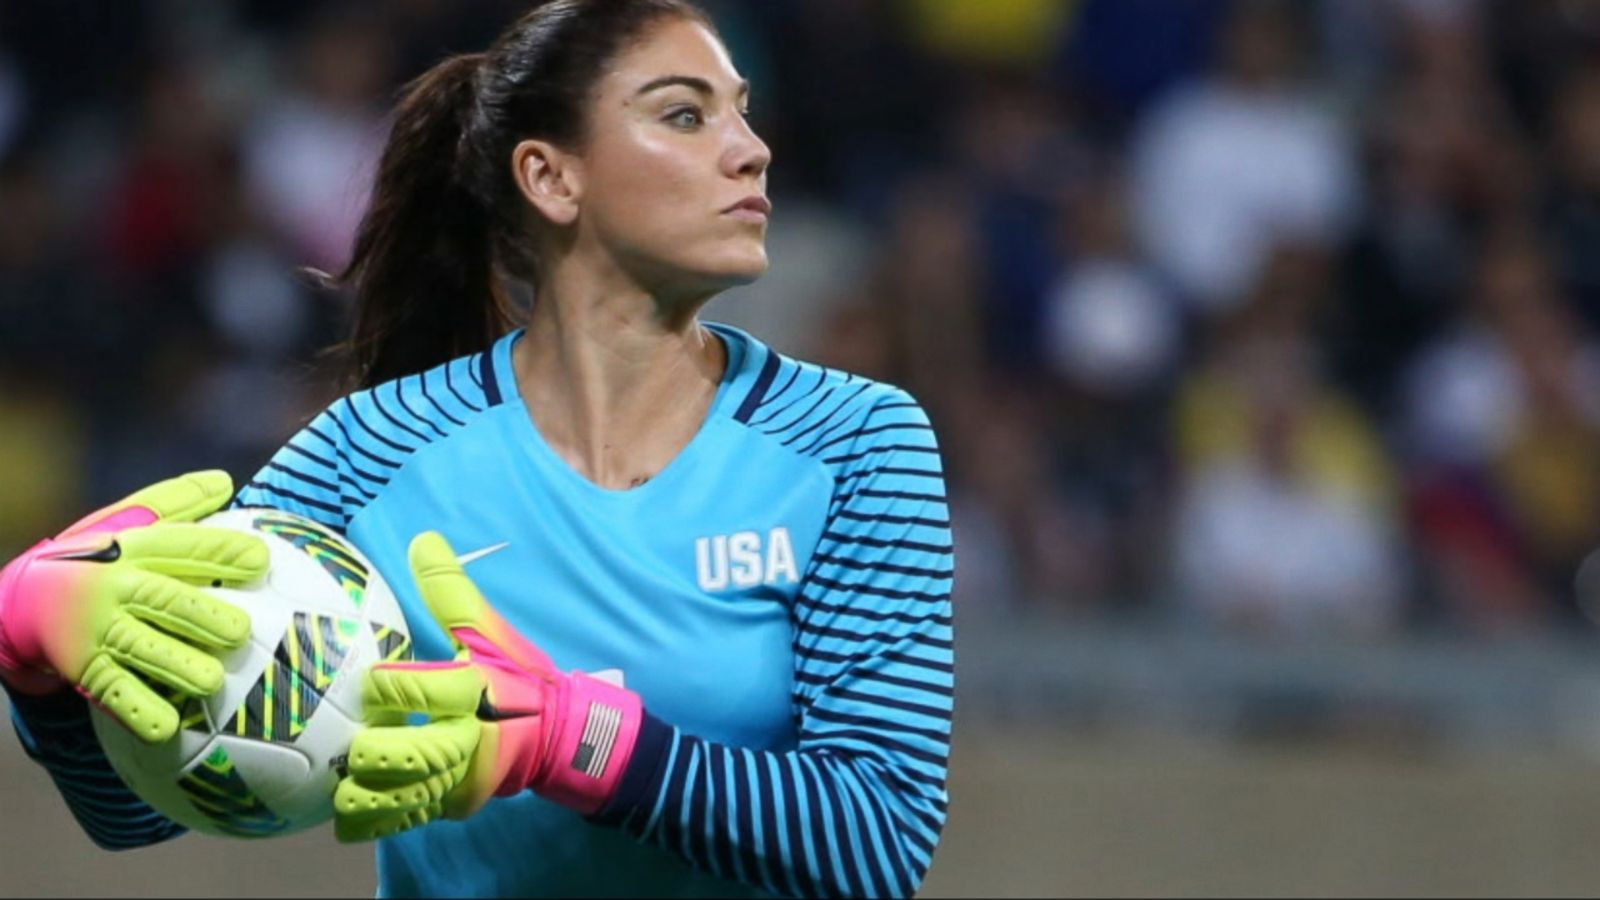 U.S. women's goalkeeper Hope Solo was suspended Wednesday for six months by U.S. Soccer for disparaging comments about Sweden following the Americans' early departure from the Rio Olympics.